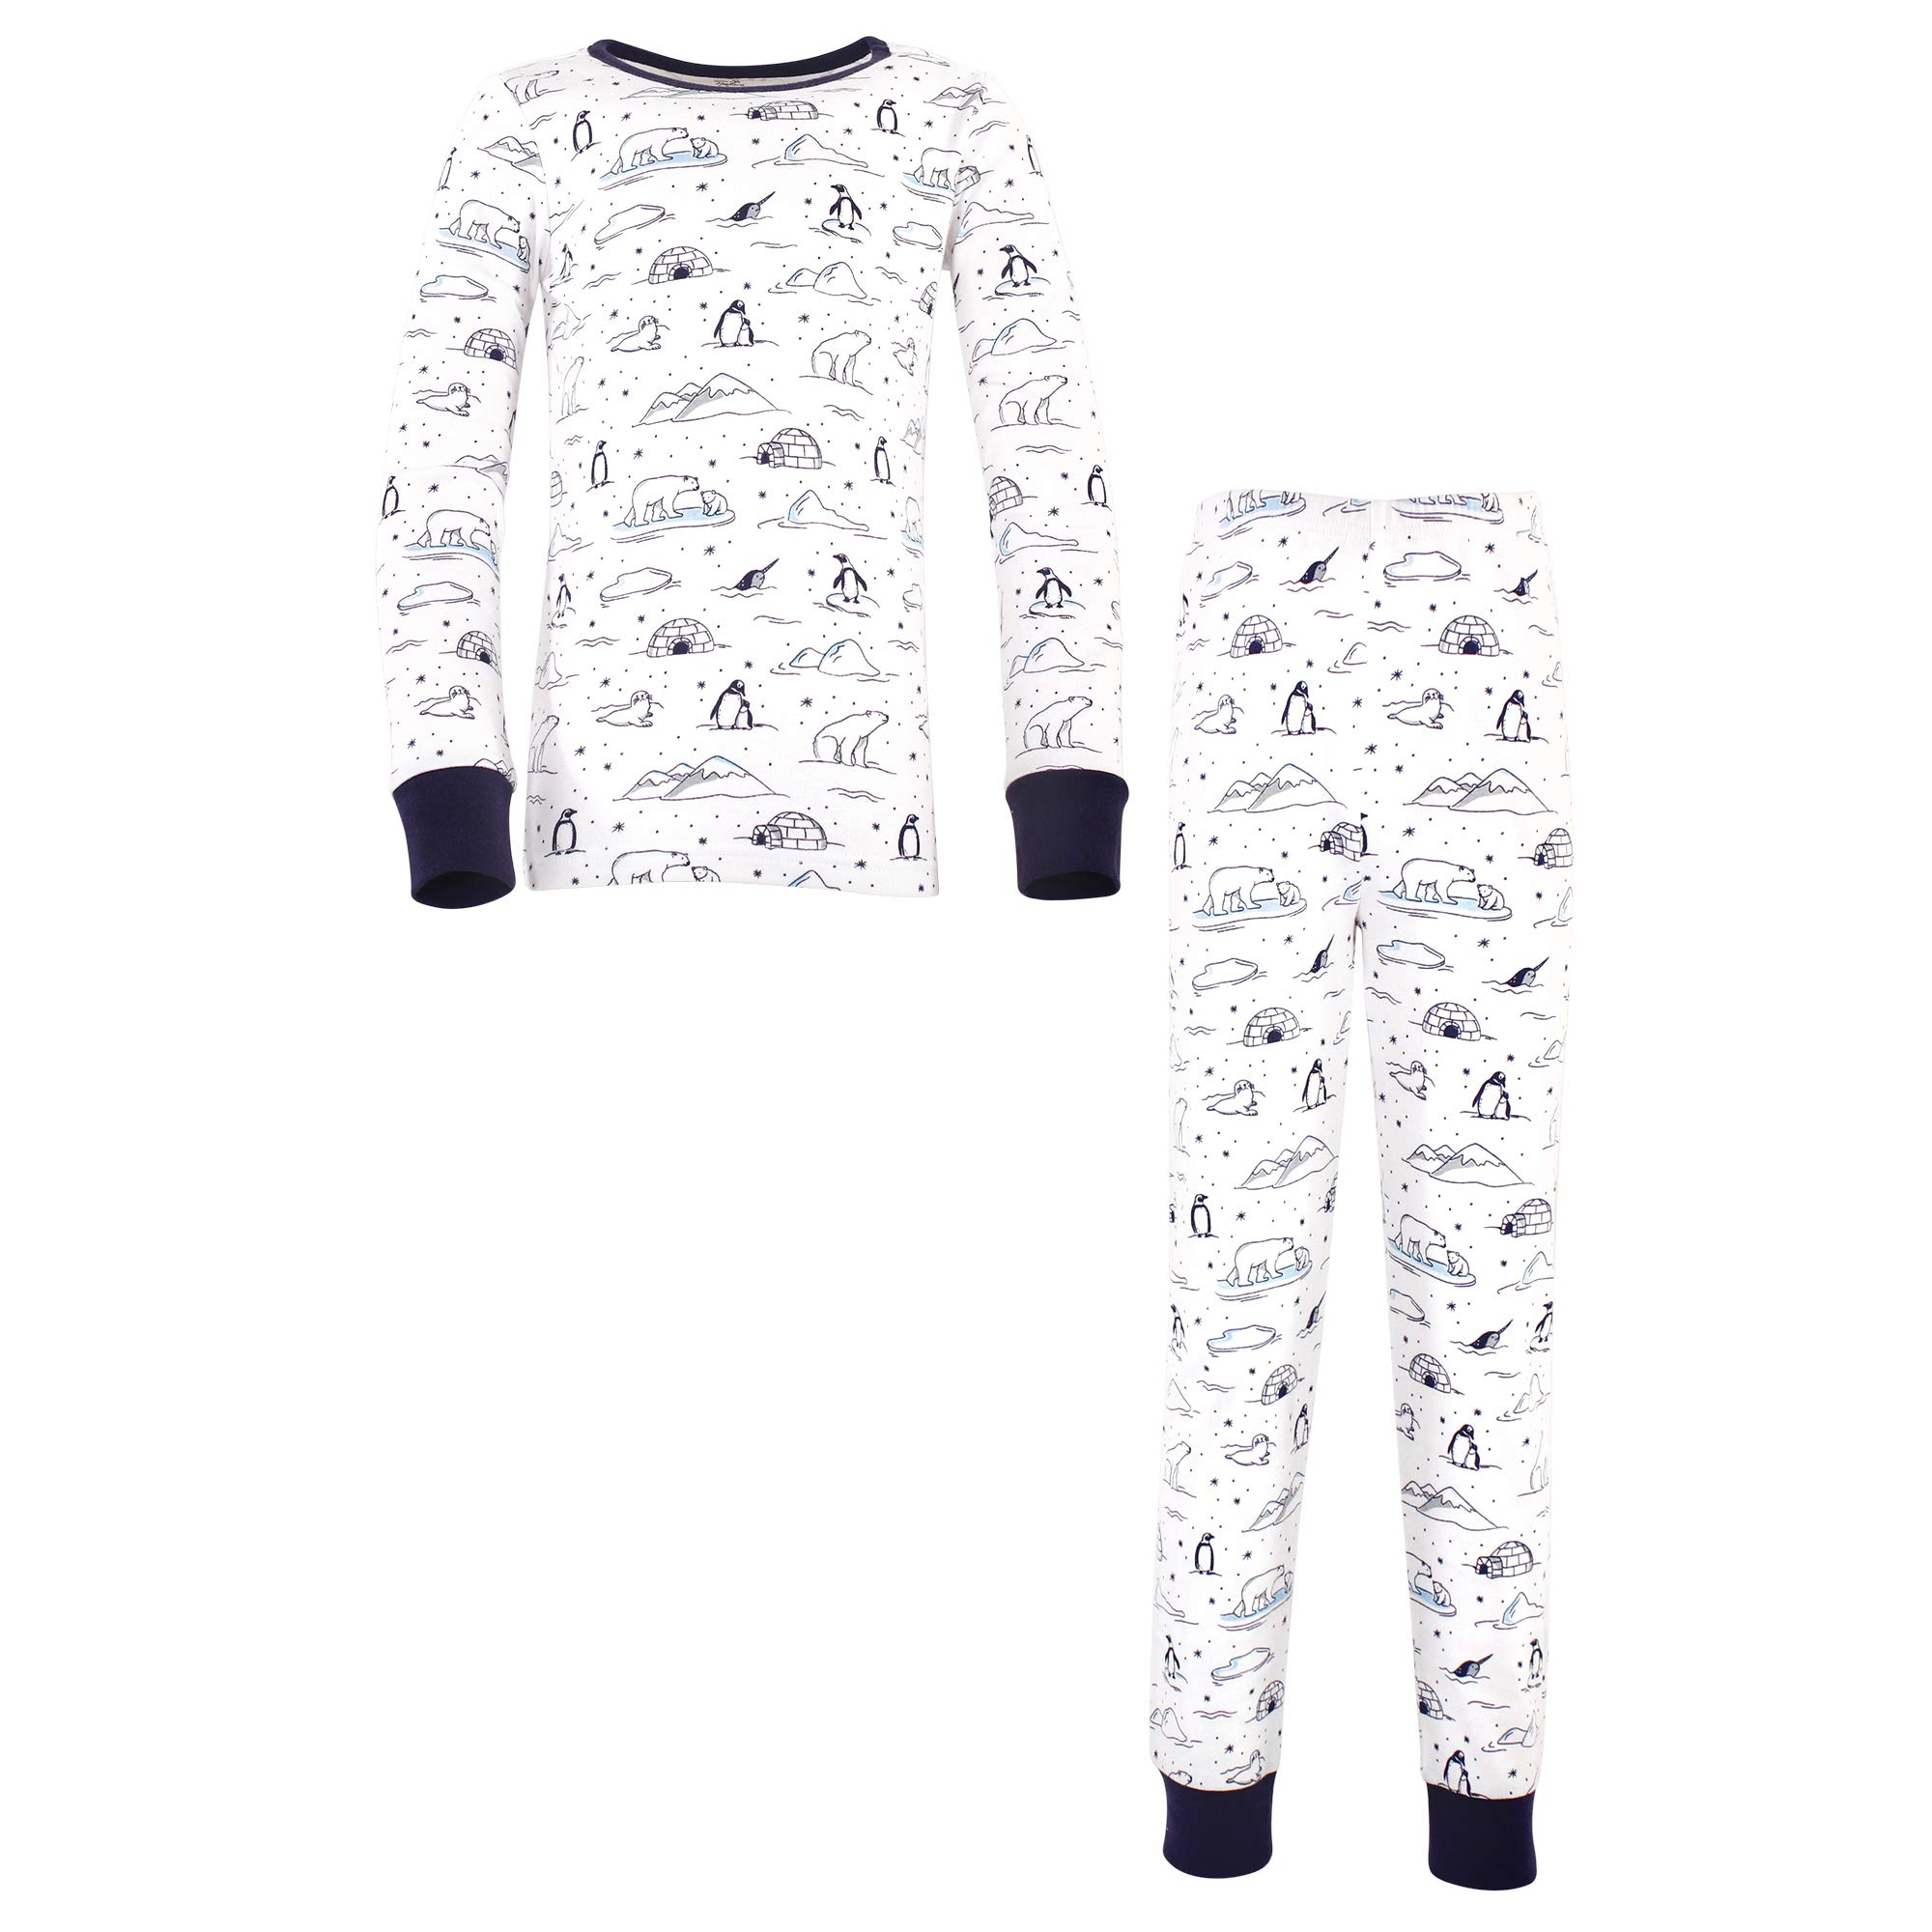 Touched by Nature Unisex Baby Organic Cotton Long Sleeve Tee Top and Pants